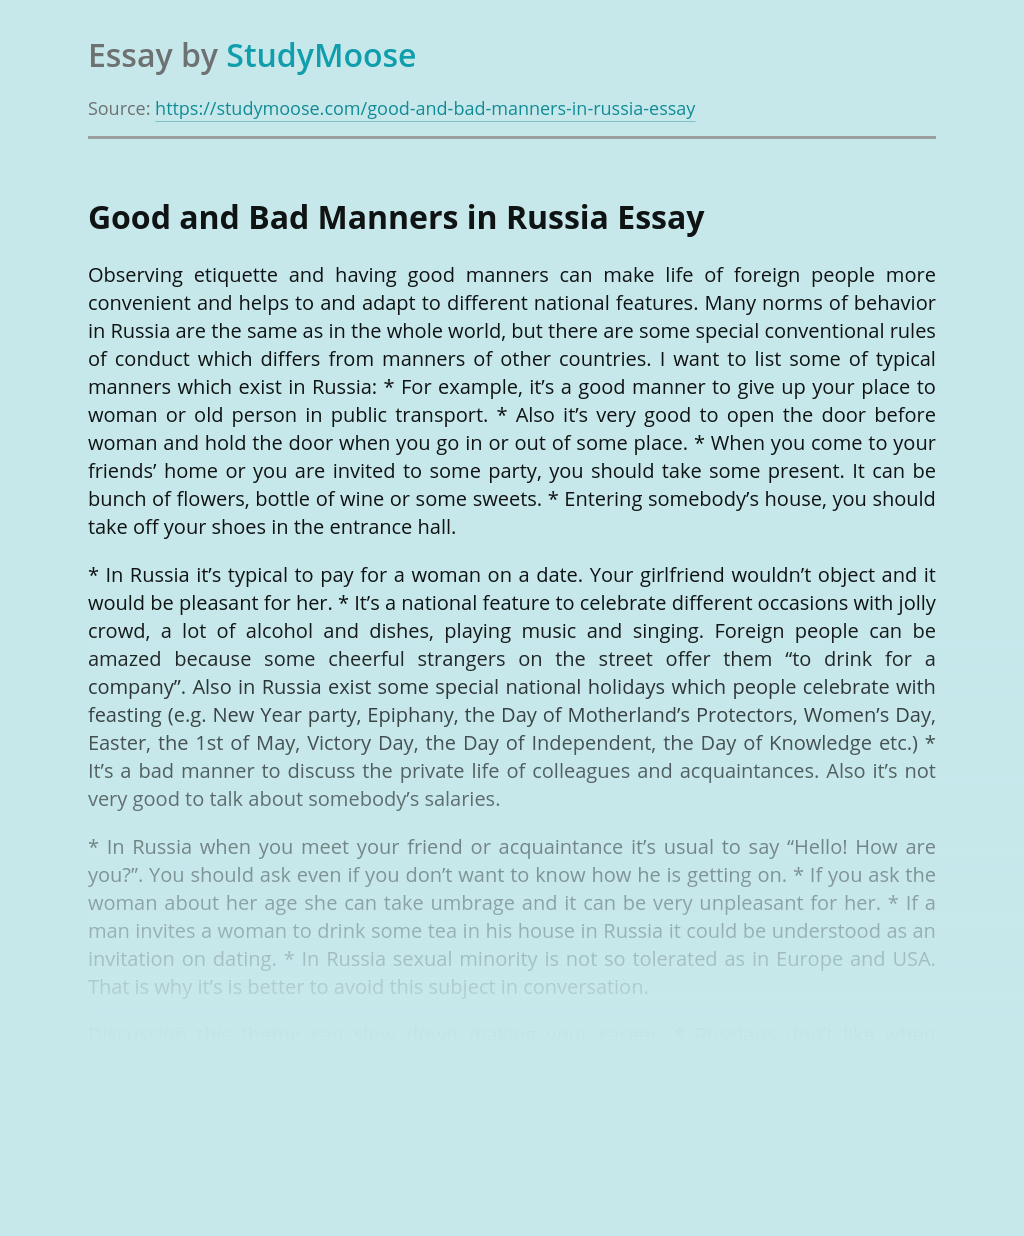 Good and Bad Manners in Russia